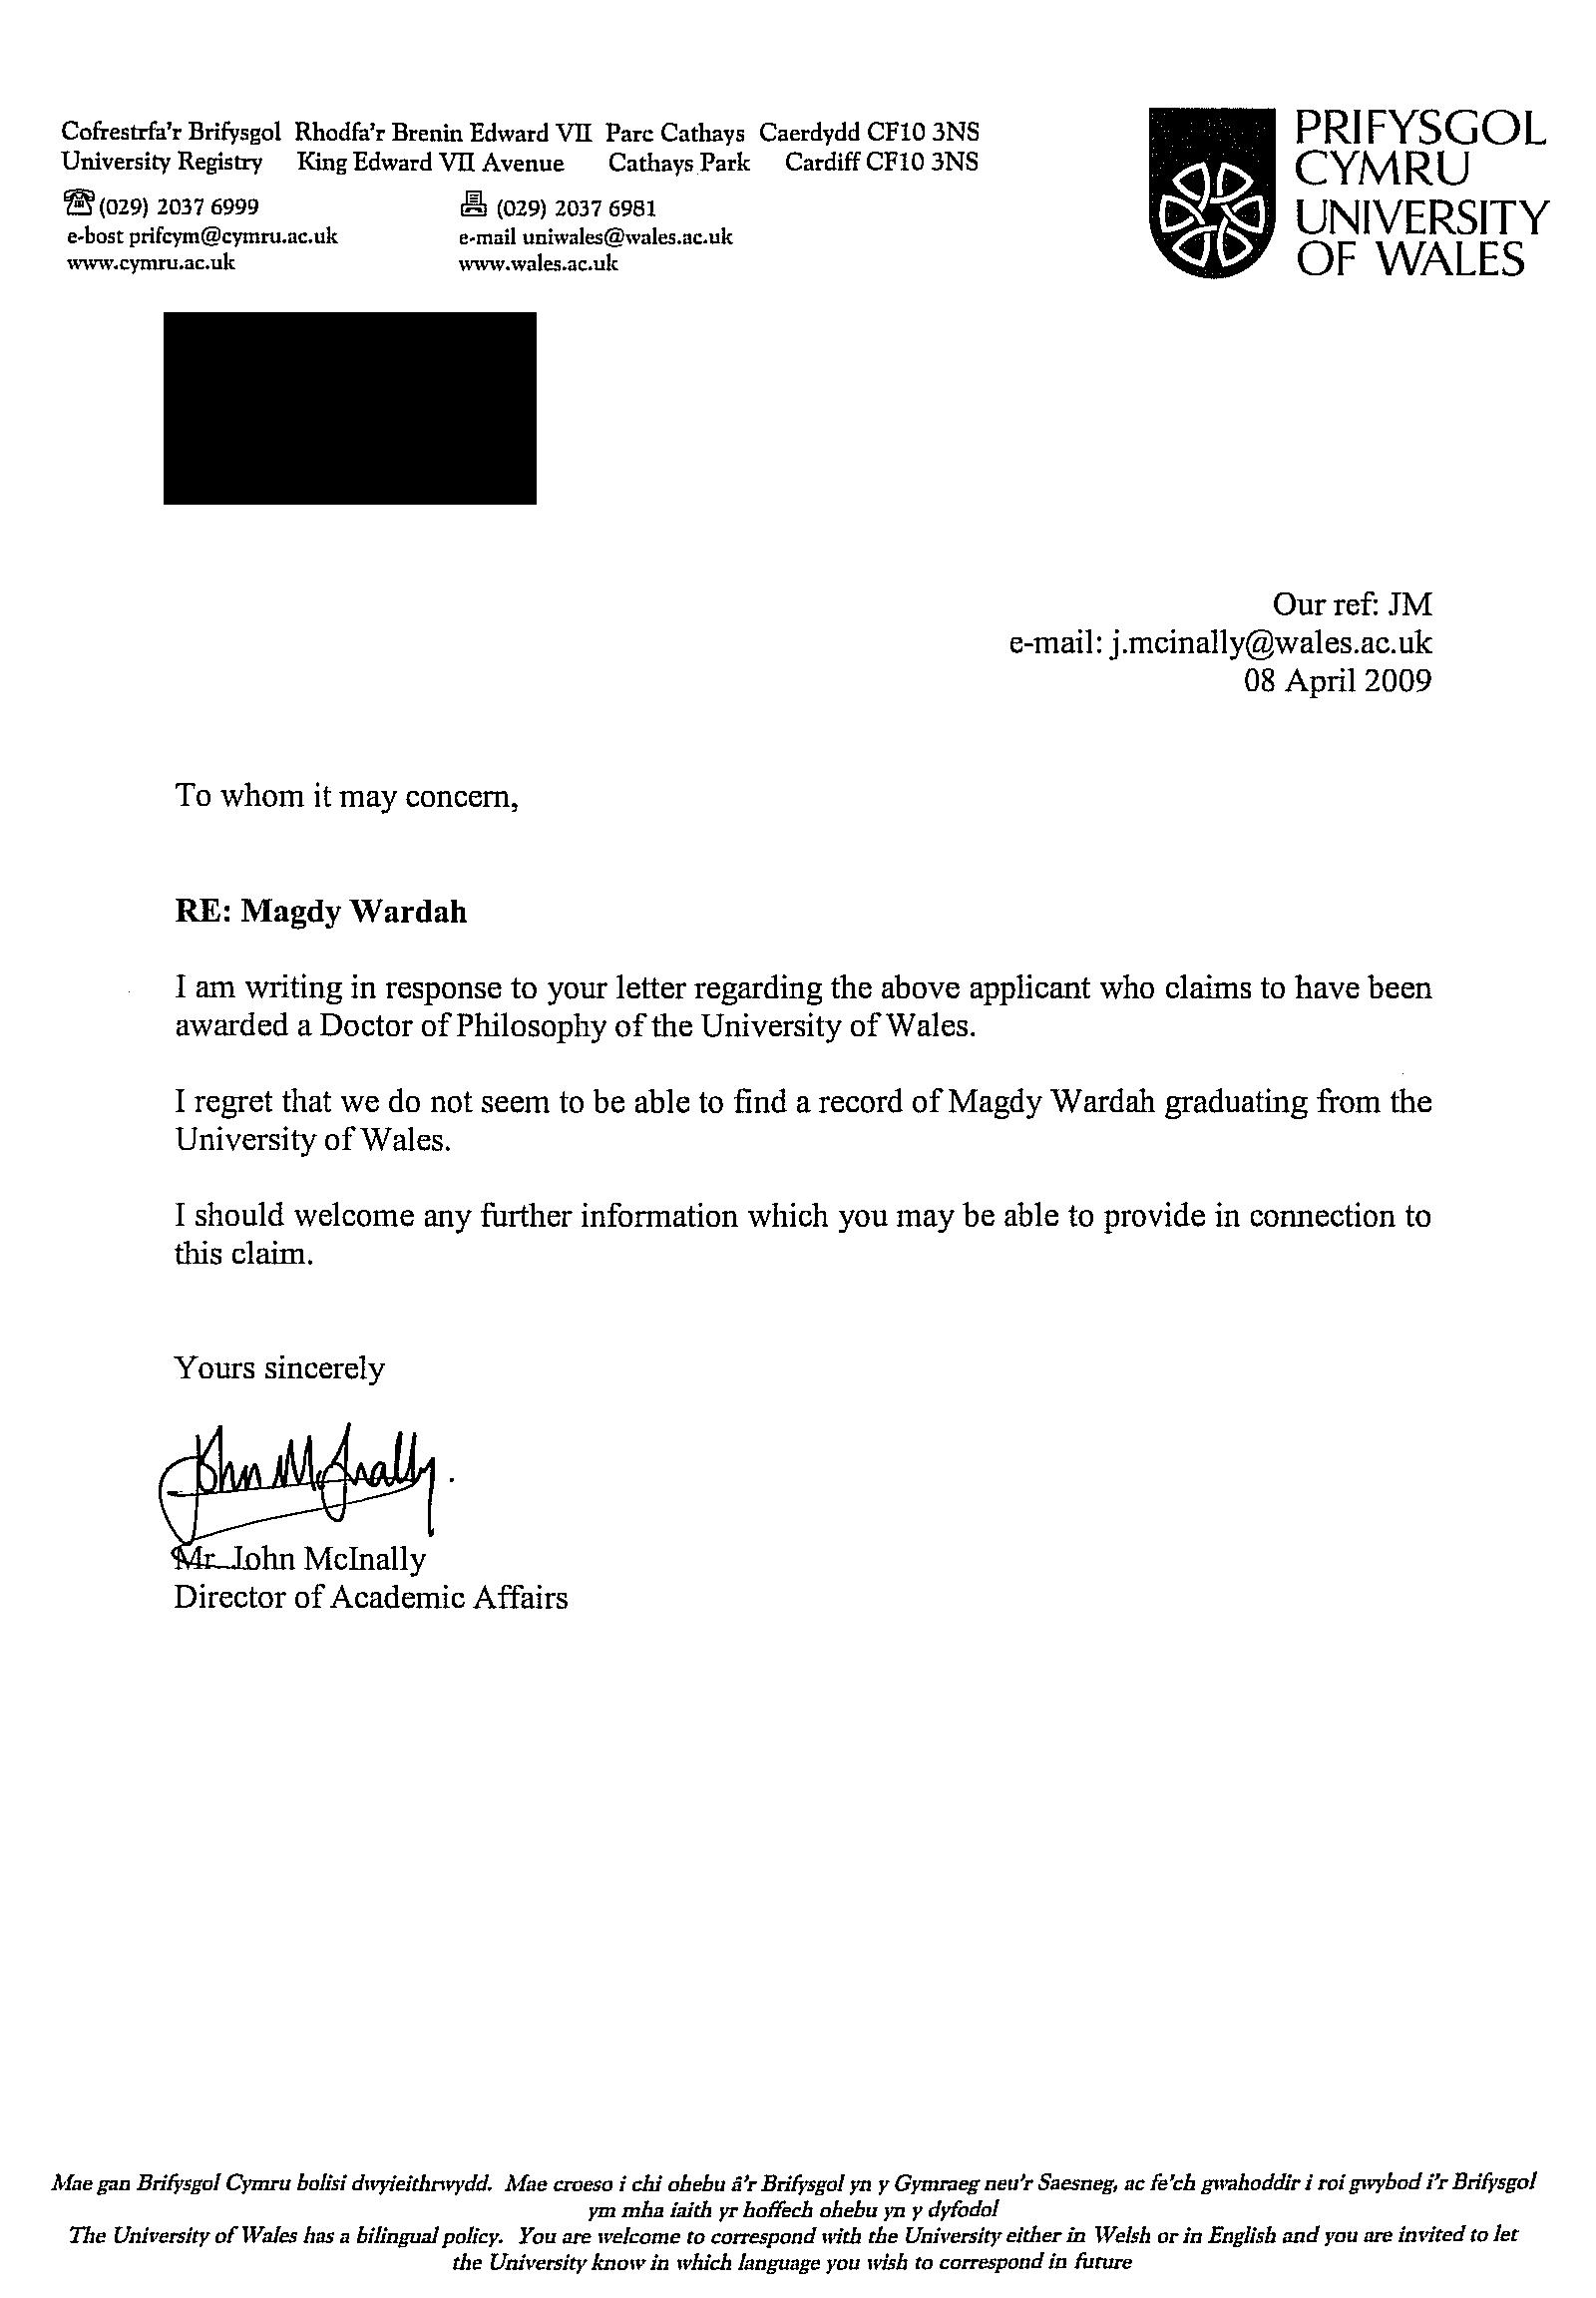 Letter from the University of Wales Confirming Majdy Wardah Never Received a Doctorate (Ph.D)